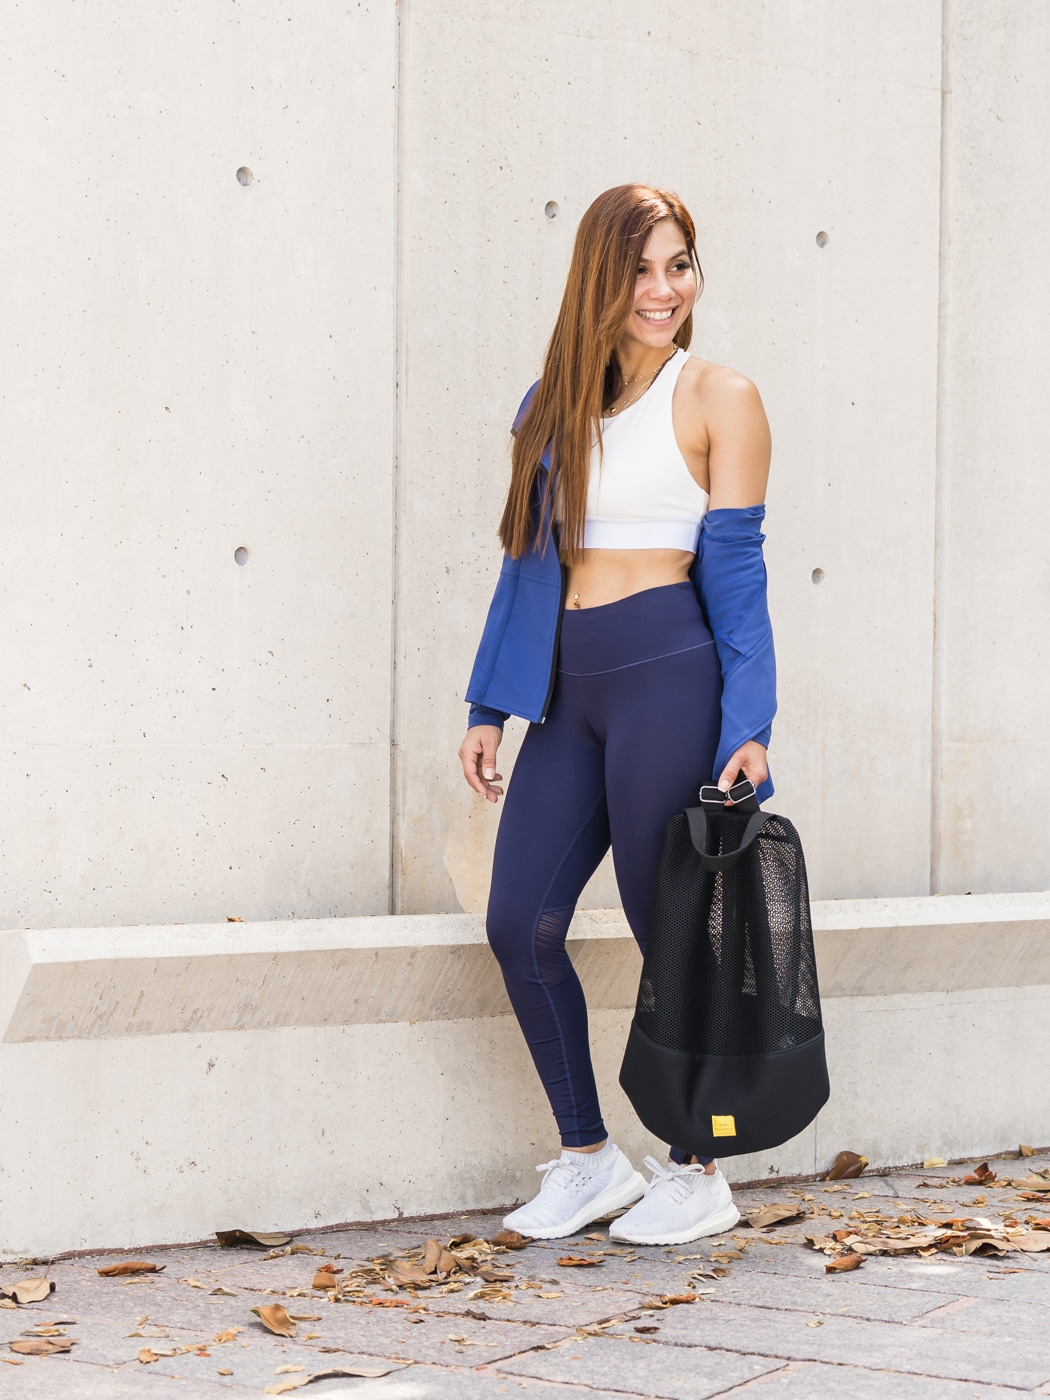 A chic gym bag should be part of your gym essentials